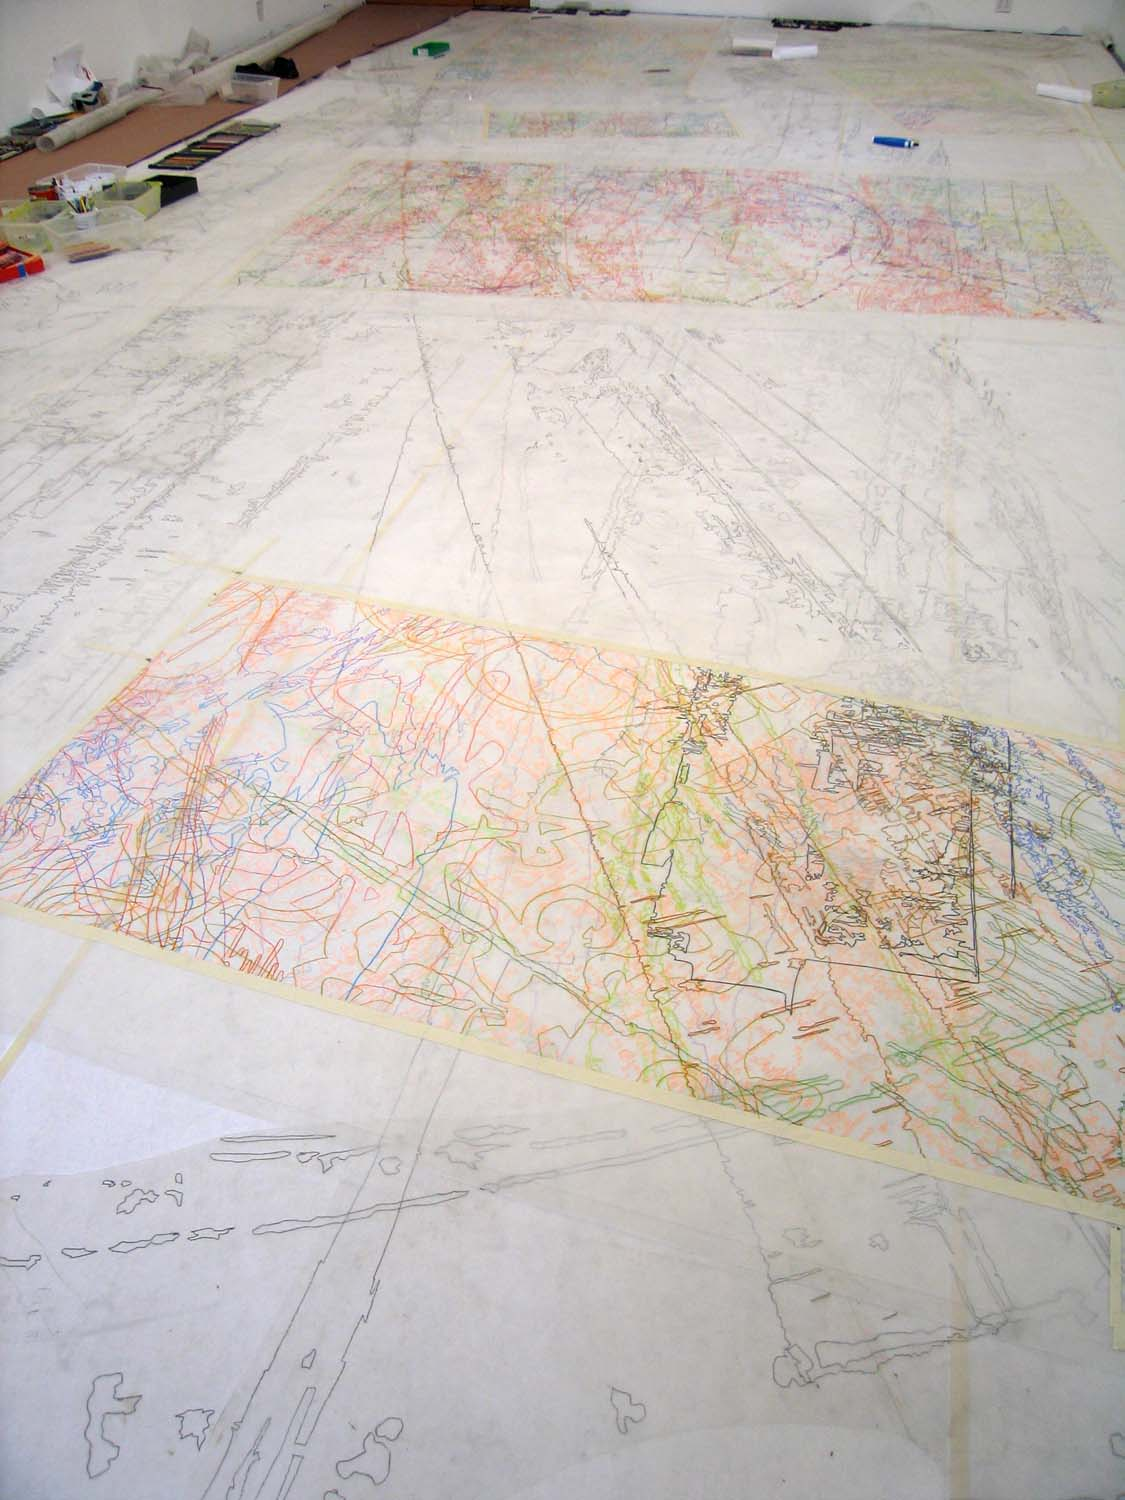 Color pencil drawings in process, 2007